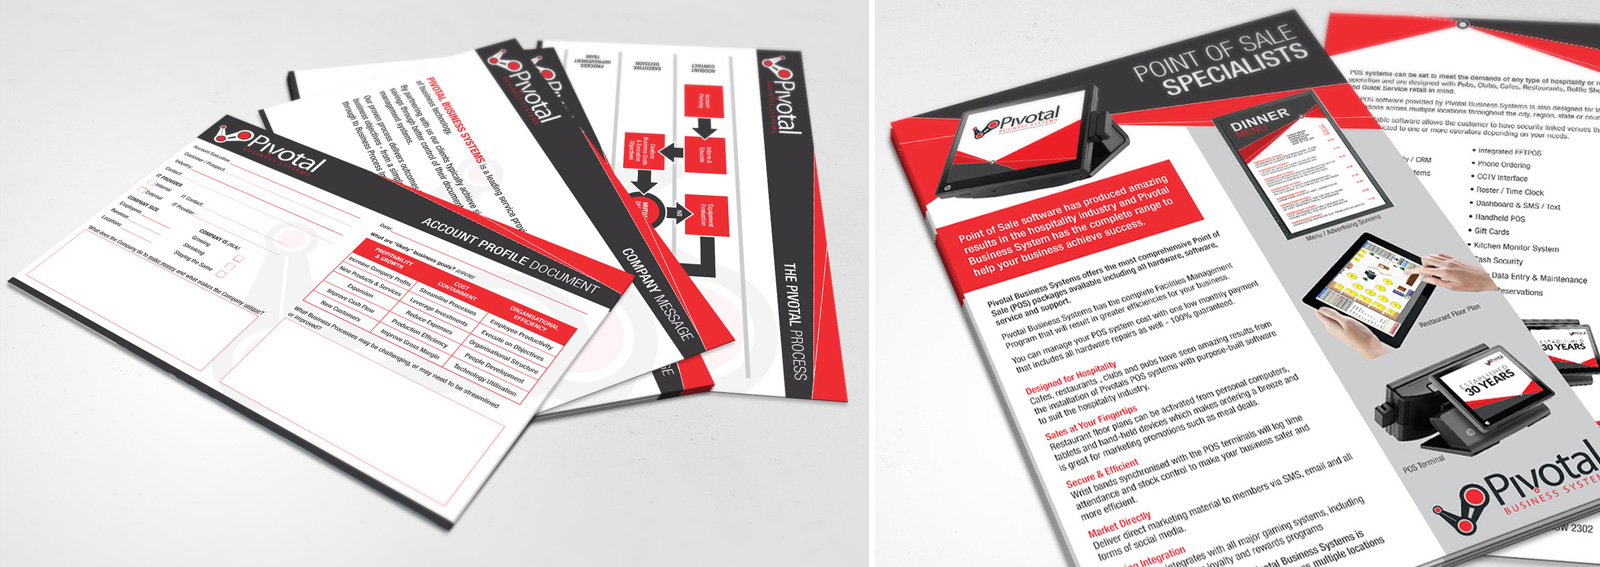 Pivotal Business Systems Promotional Design